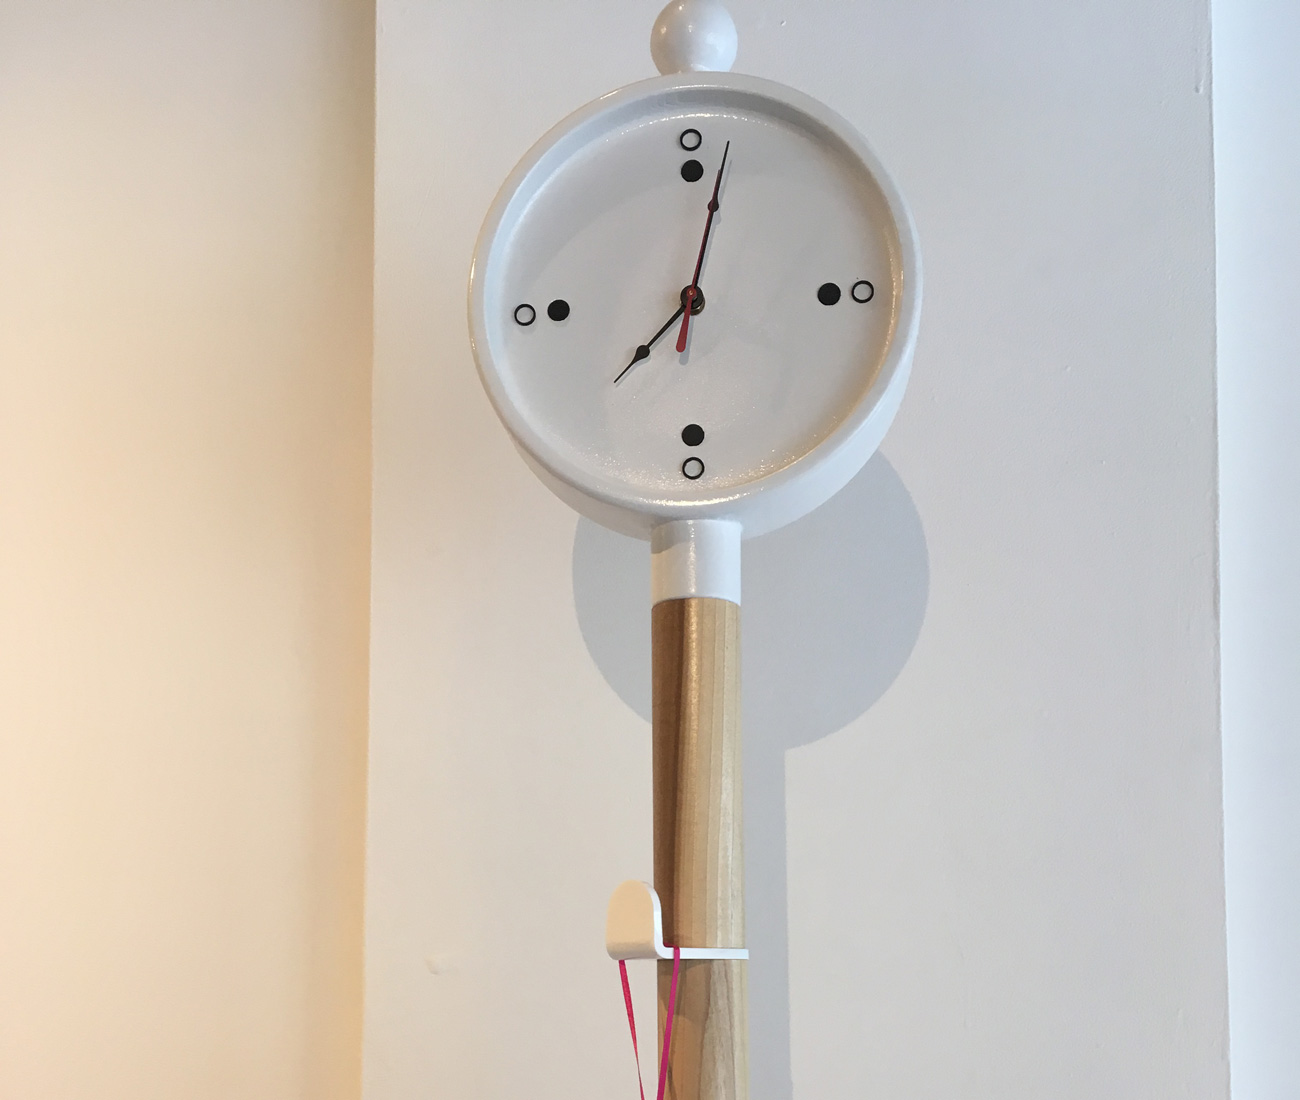 London Coat Stand. This playful riff on a coat stand incorporates an icon of London life: Big Ben. Perfect for hanging trench coats, umbrellas and hats, it also tells the time. Payvar Sazesh's multifunctional timepiece, made from solid poplar, MDF, acrylic and clock components, will be available at Umbra soon. Not bad for an OCAD U student on the rise. (Tables, Chairs & Other Unrelated Objects, Ignite Gallery, 165 Augusta Avenue)